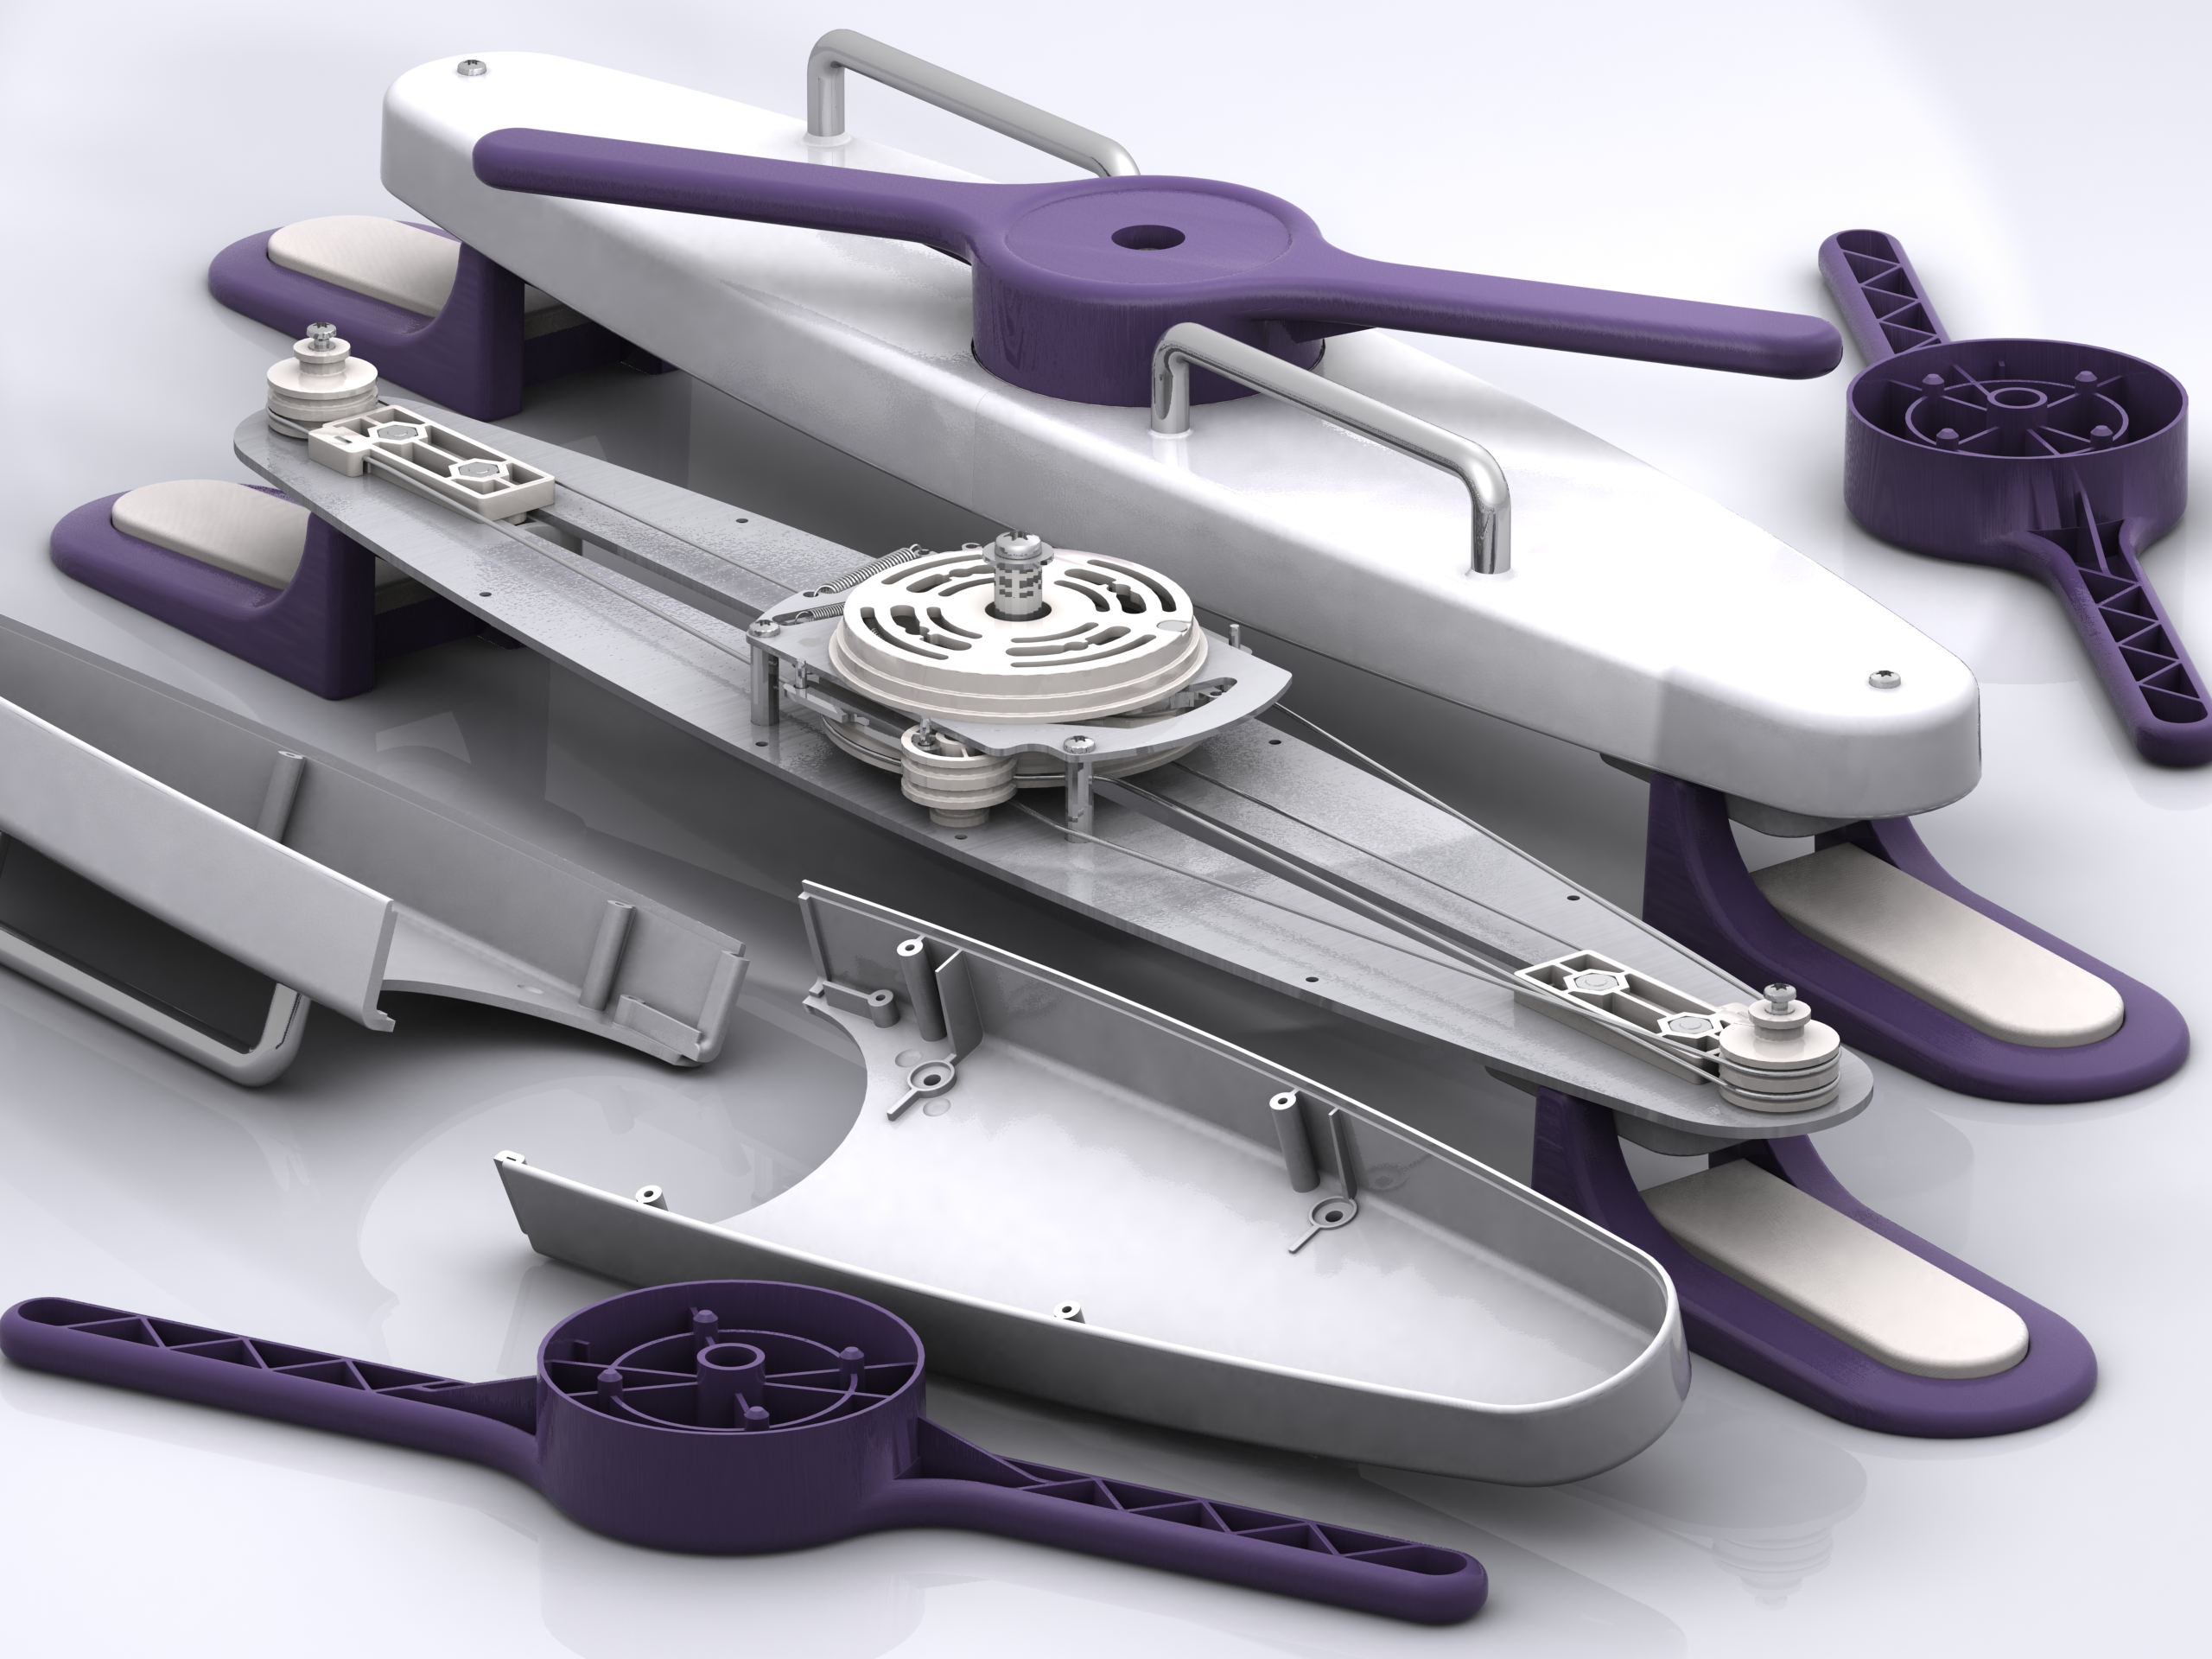 Aductor muscle stretching physiotherapy device trial models